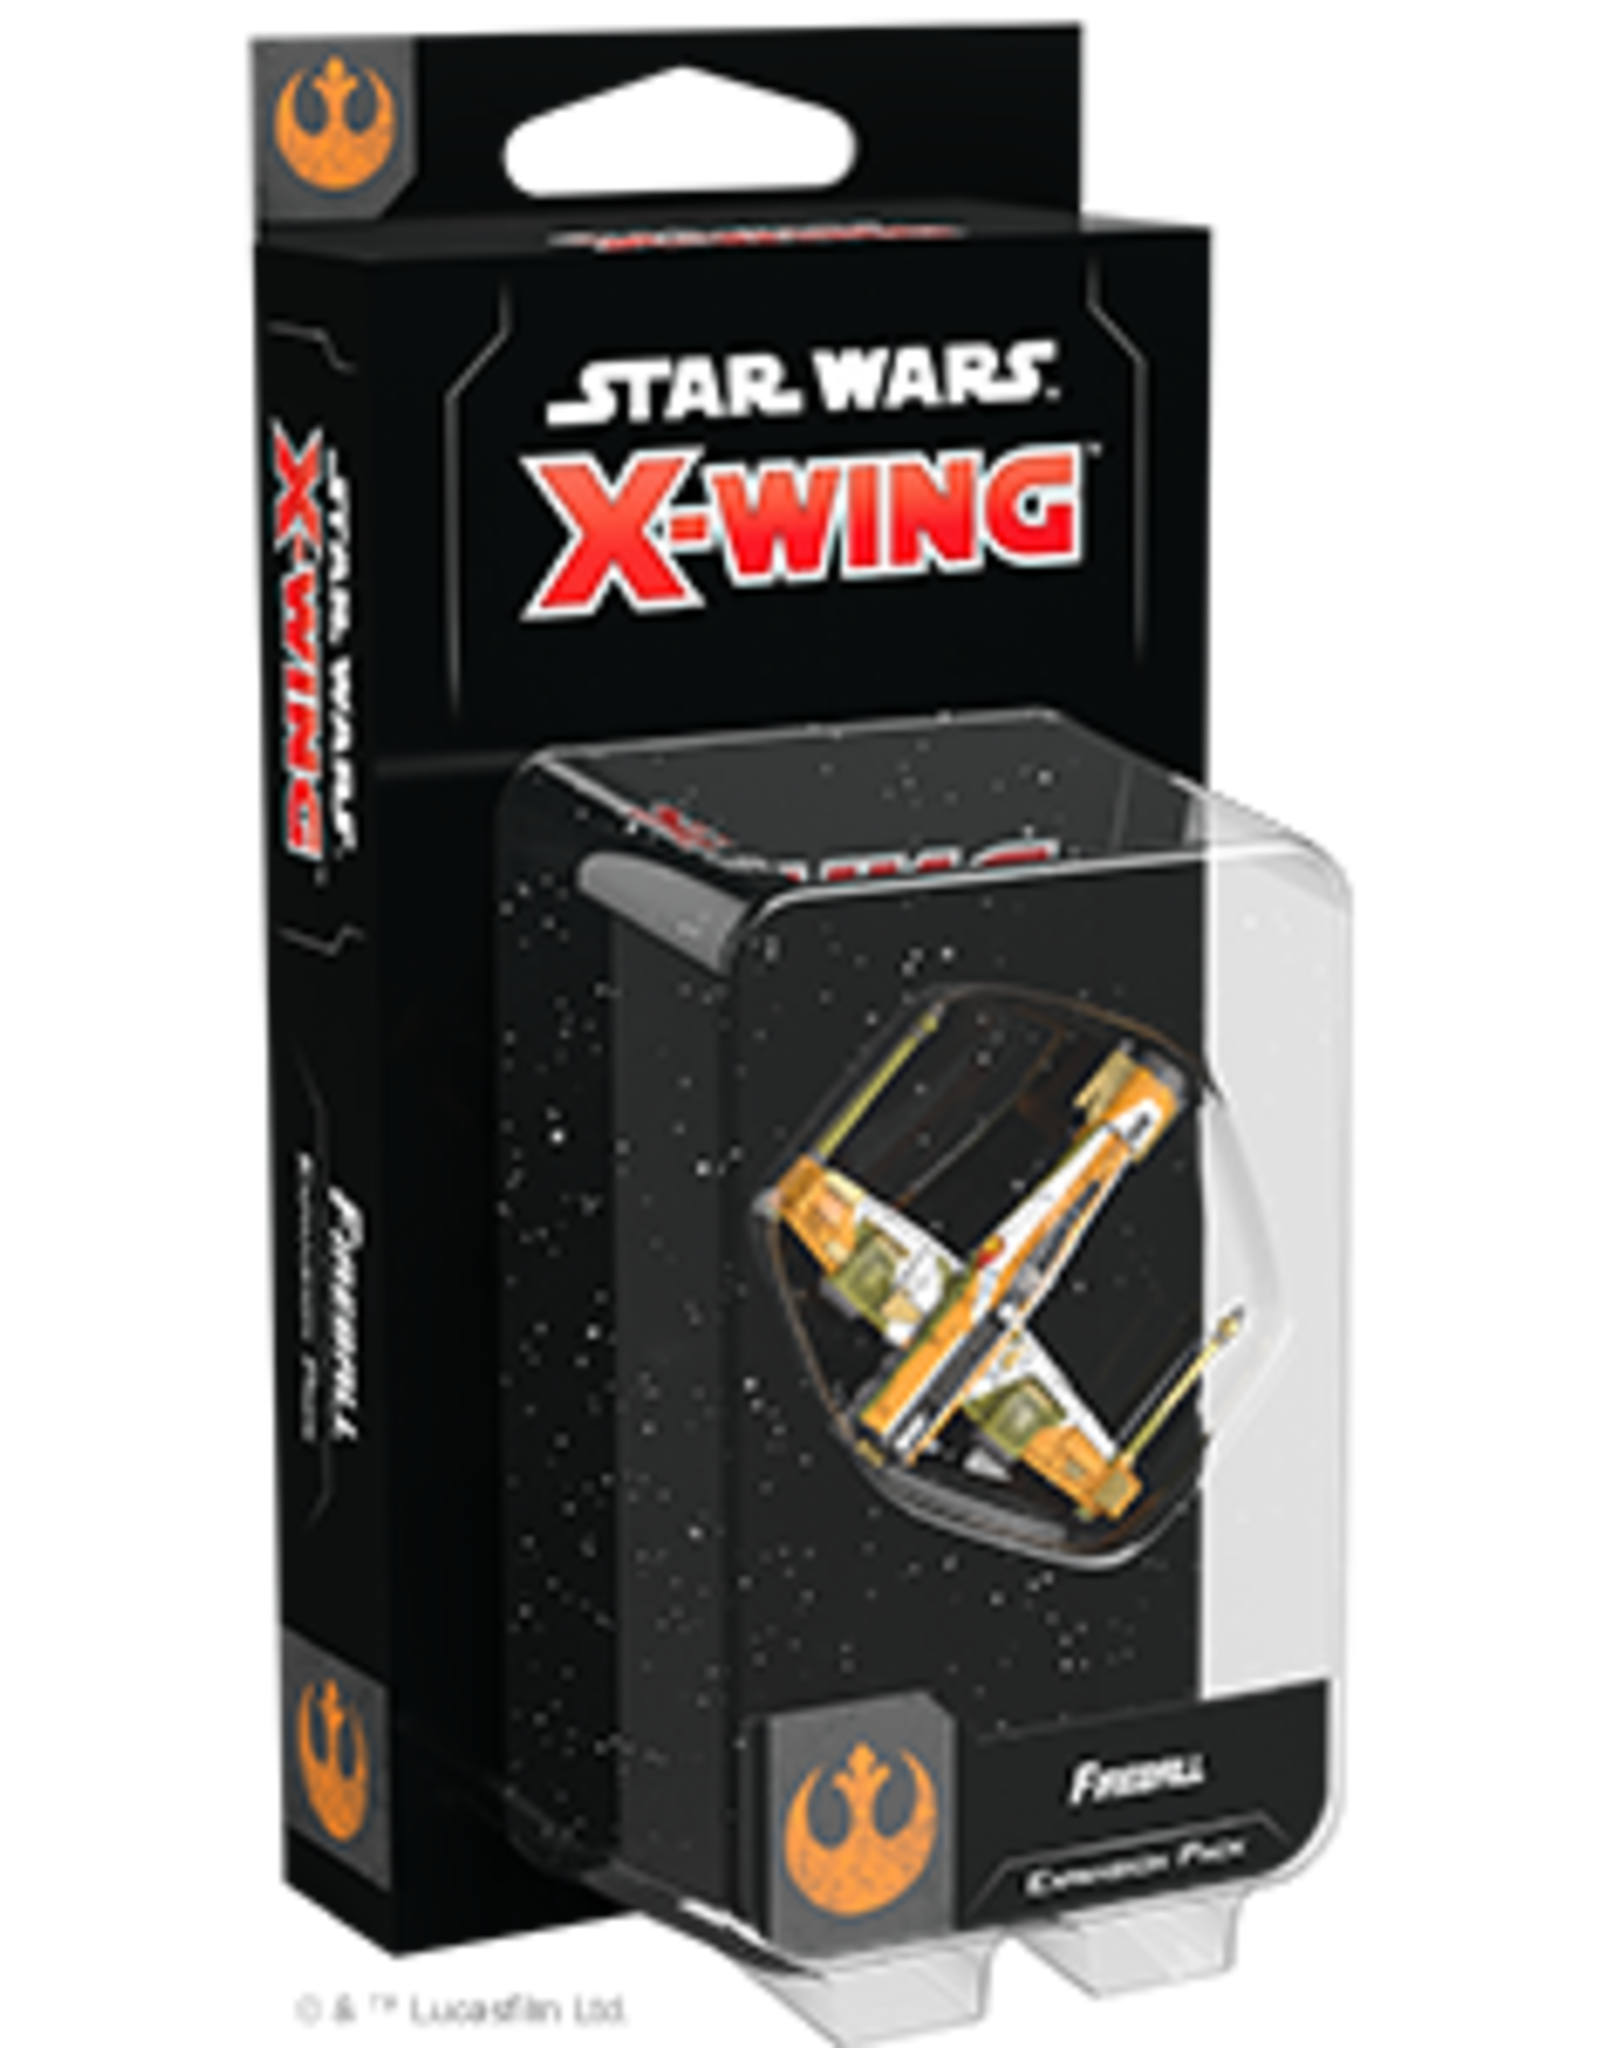 FFG Star Wars X-Wing 2.0: Fireball Expansion Pack